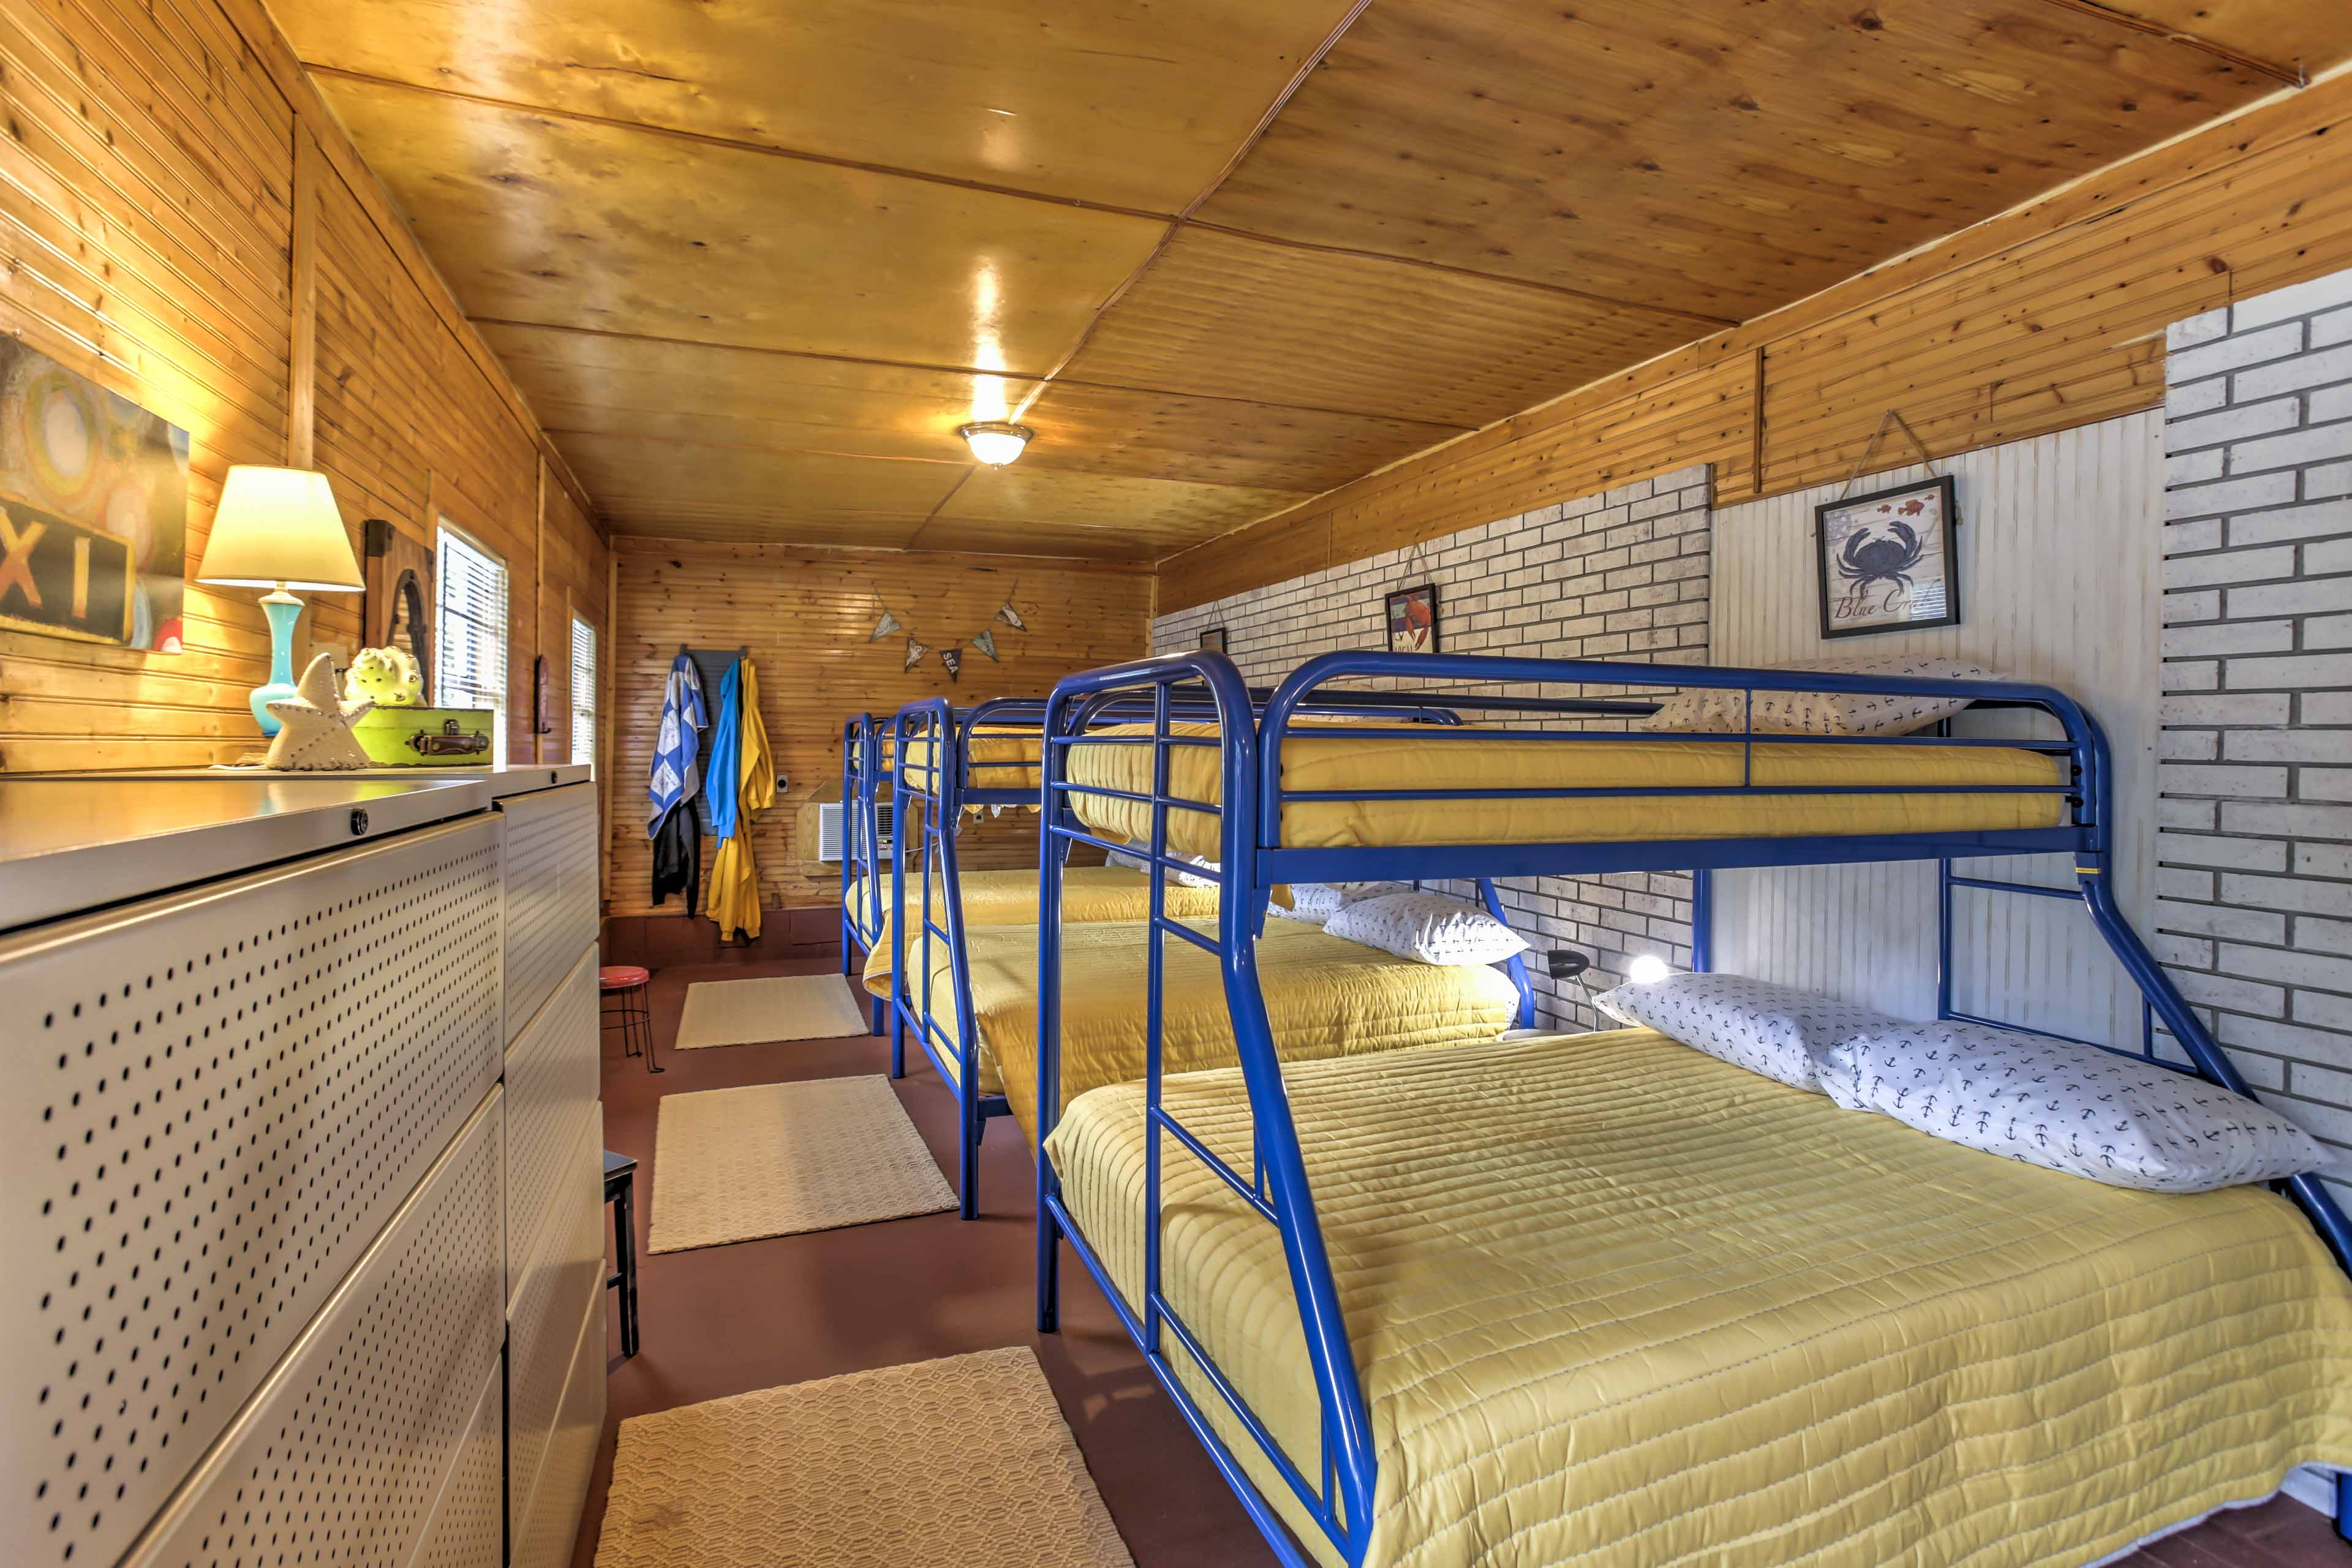 The fourth bedroom features 3 twin-over-full bunk beds.